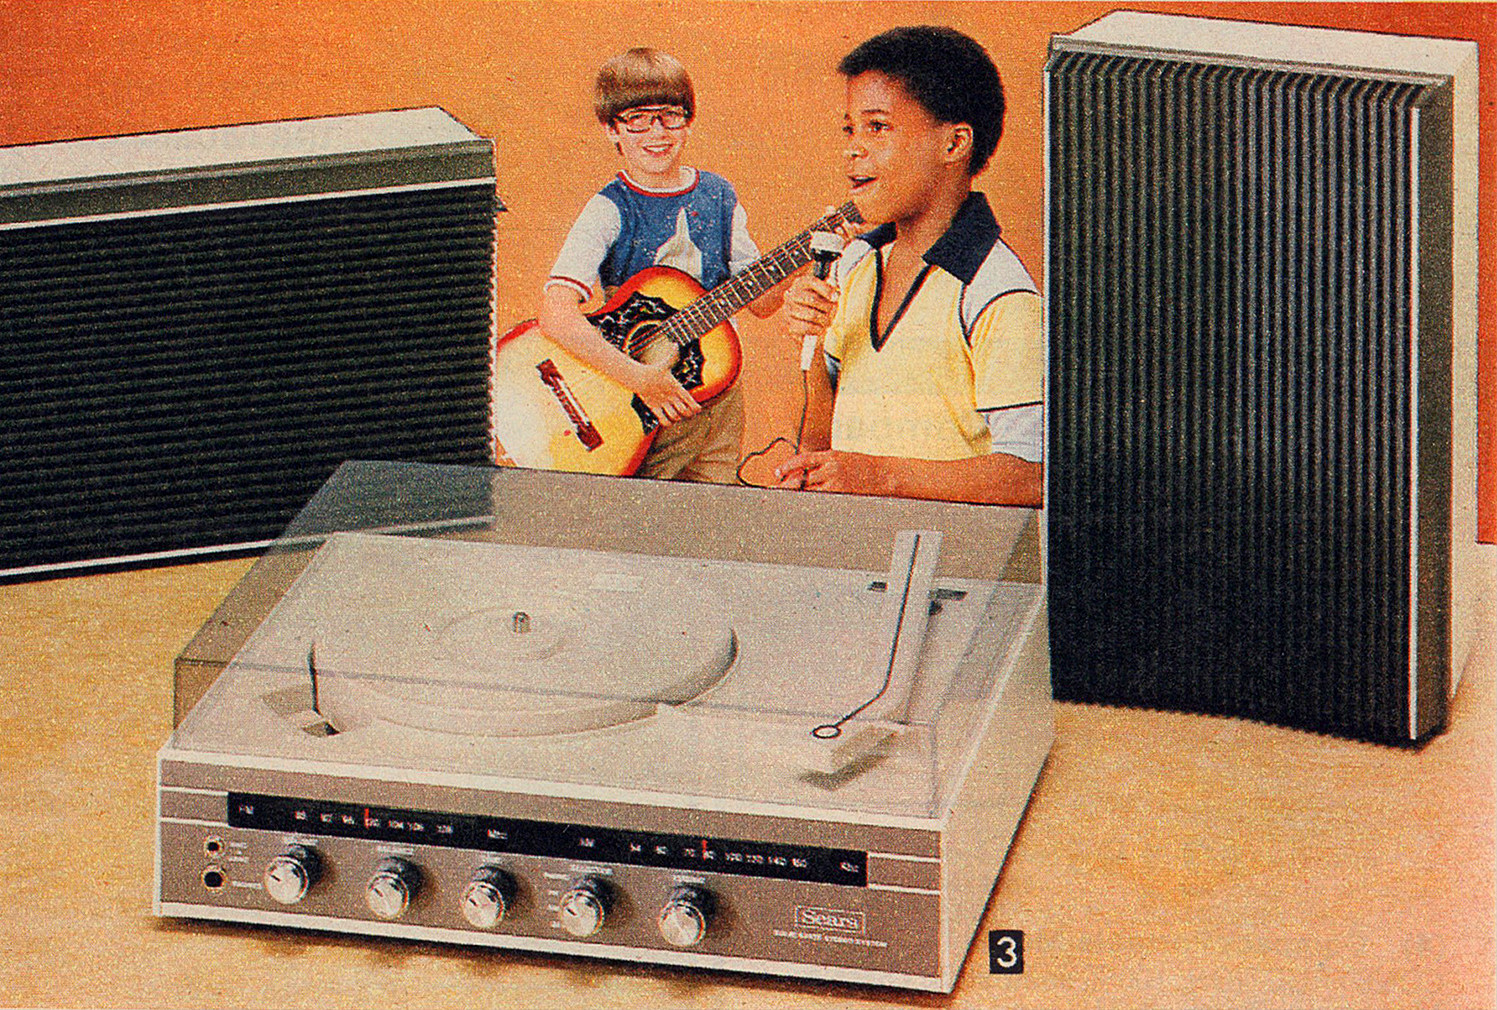 sears-catalog-1979-record-players